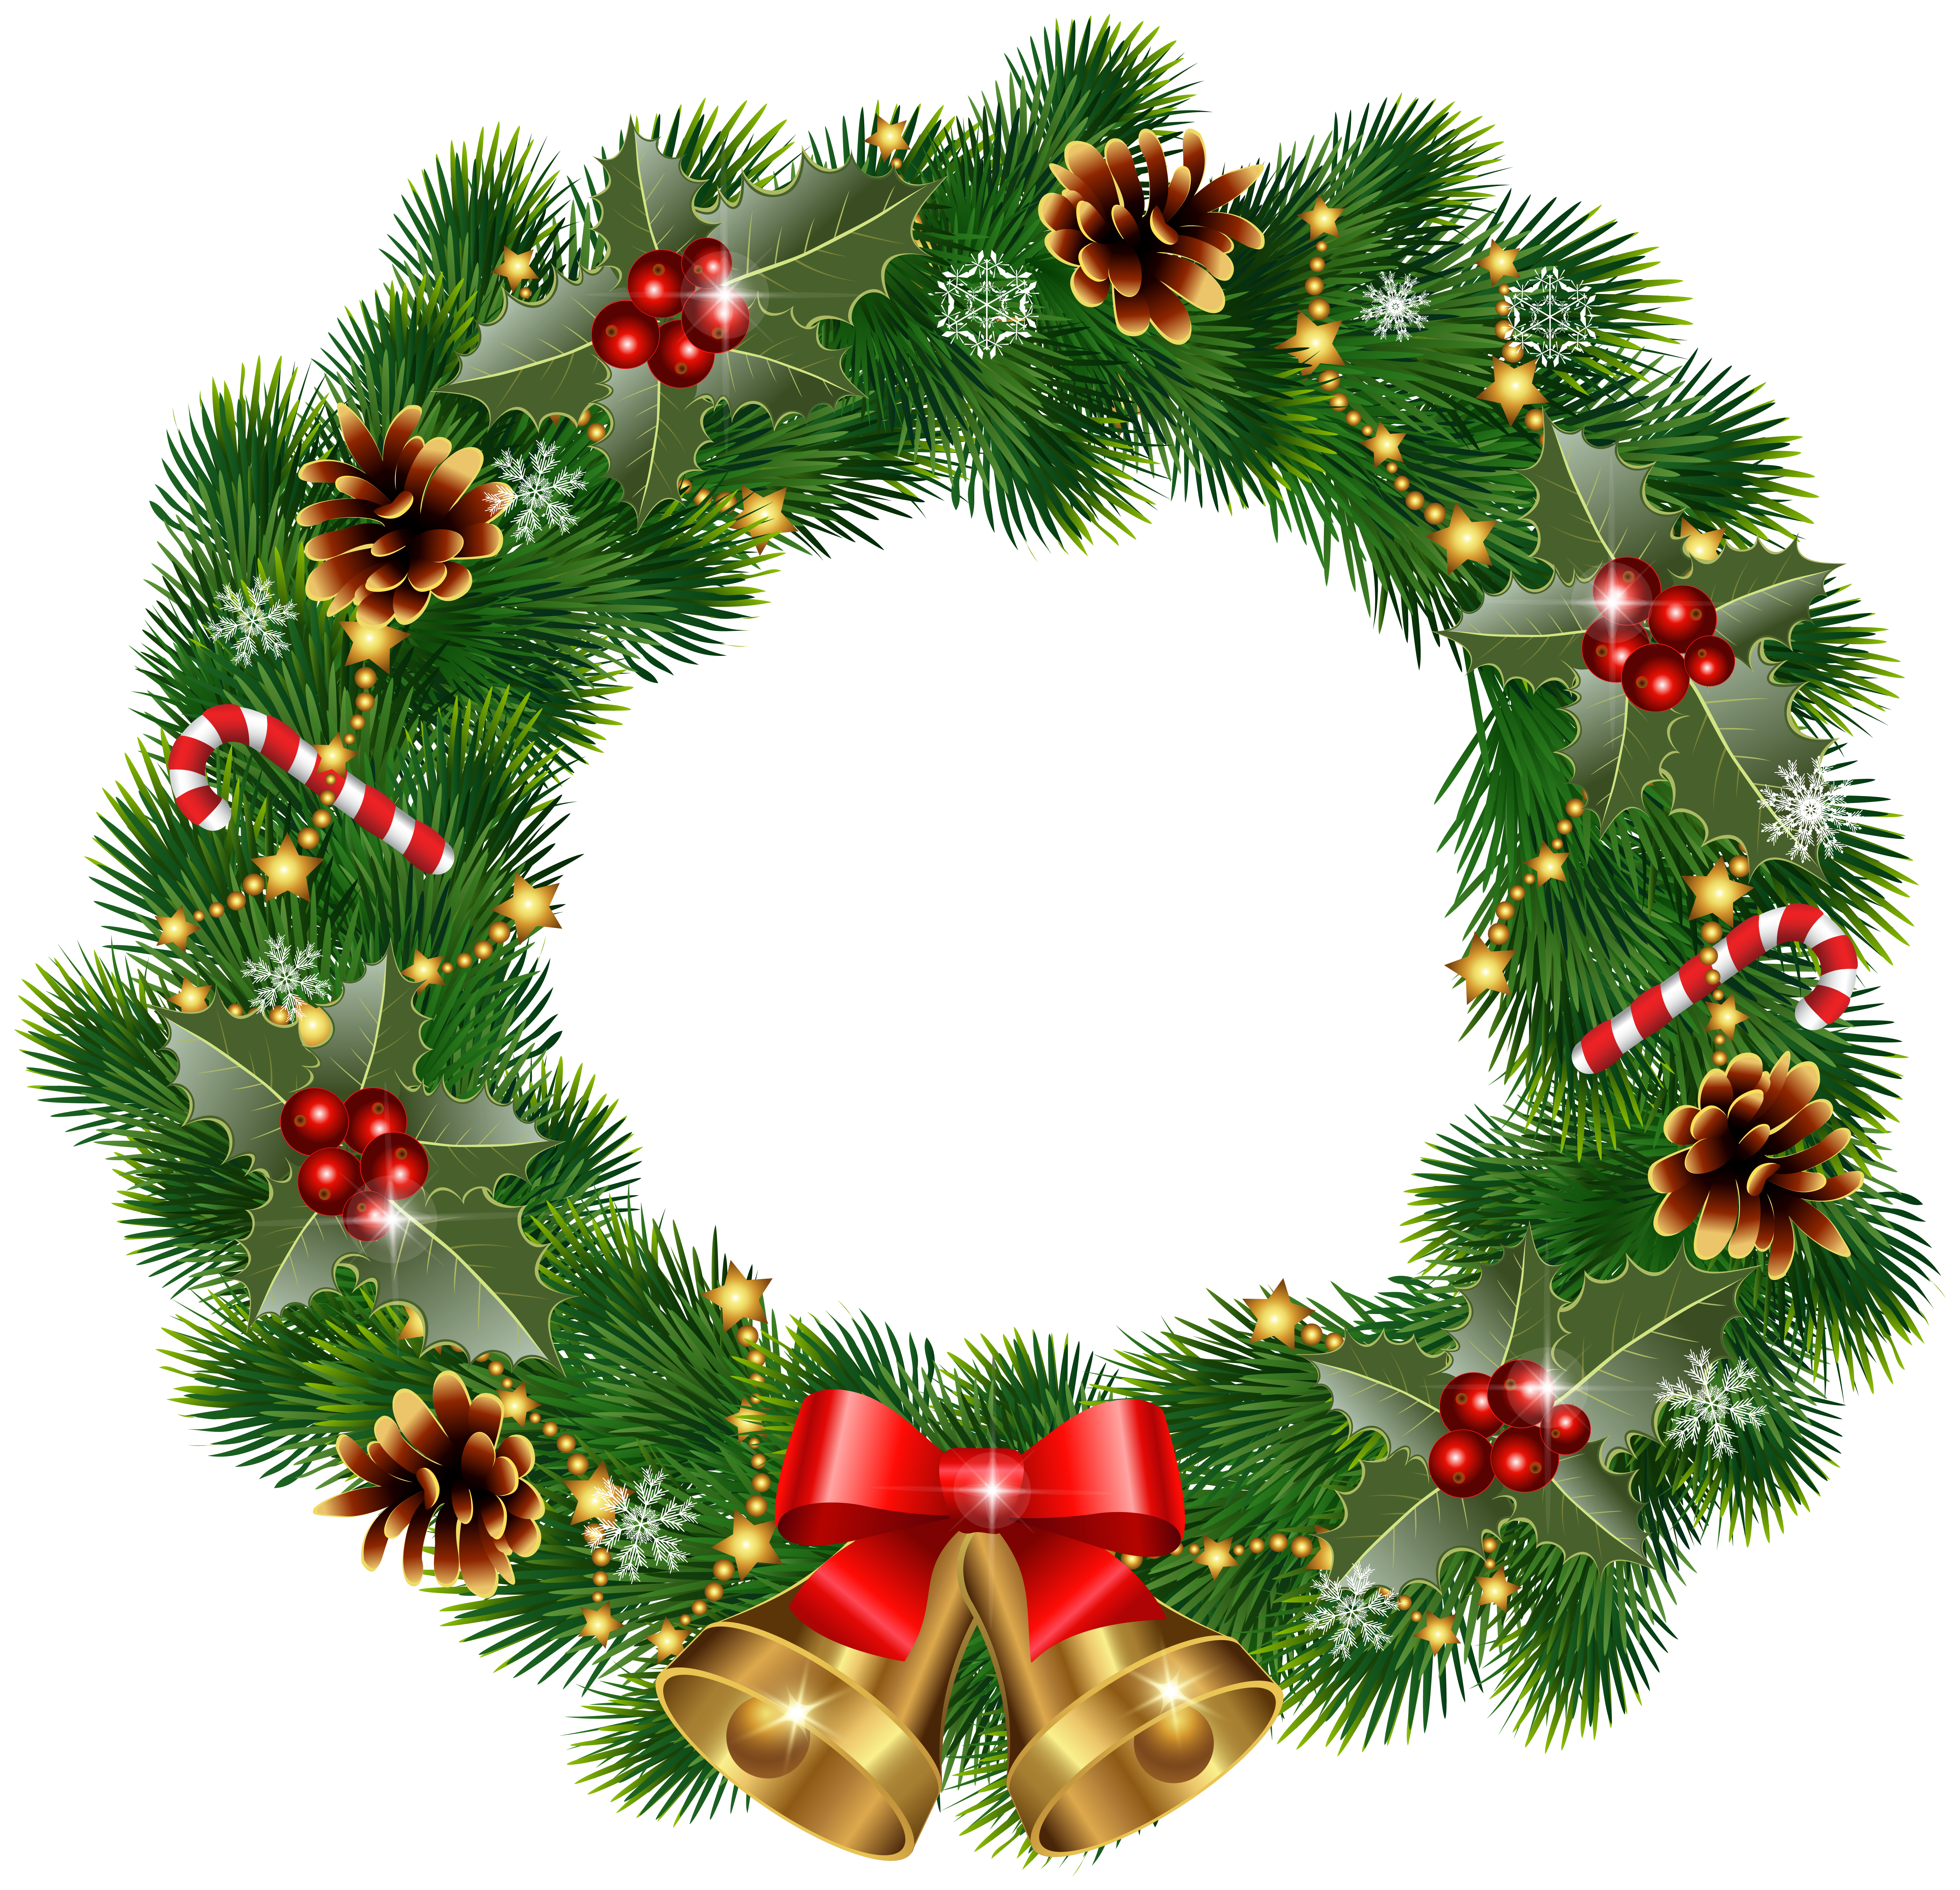 jpg black and white download Christmas wreath clipart. With bells png image